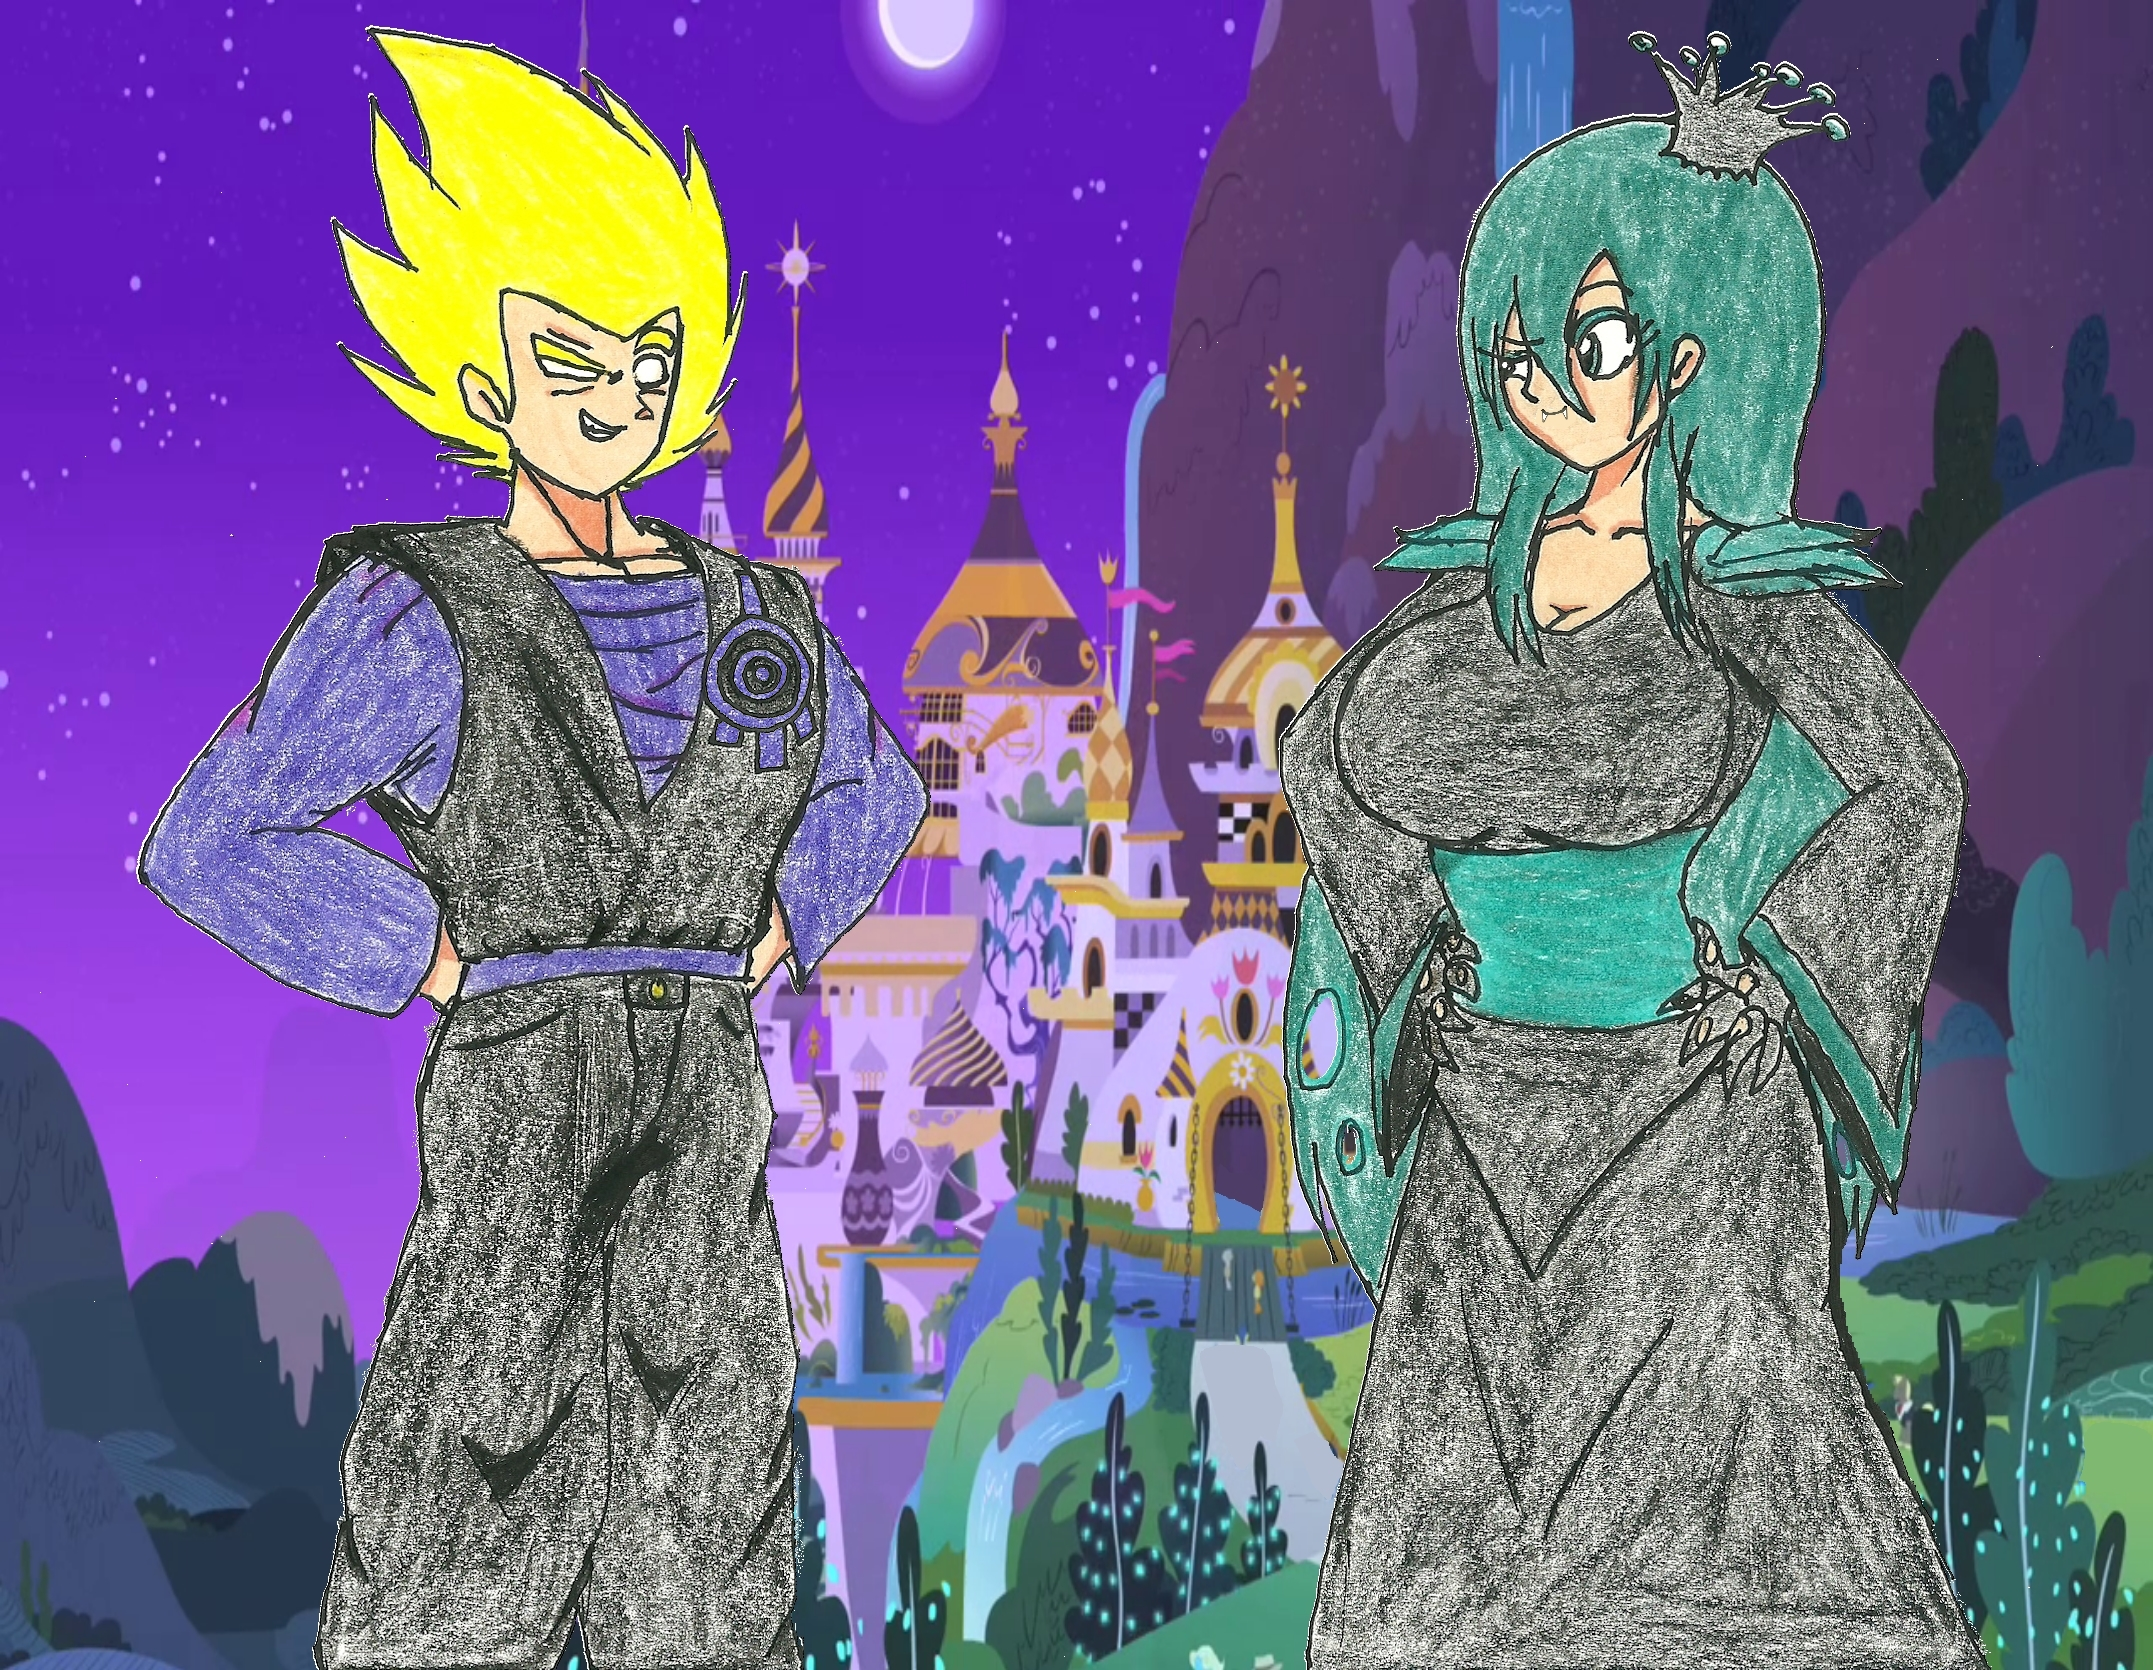 Code Lyoko Xana and Human Queen Chrysalis by WaRrior9100